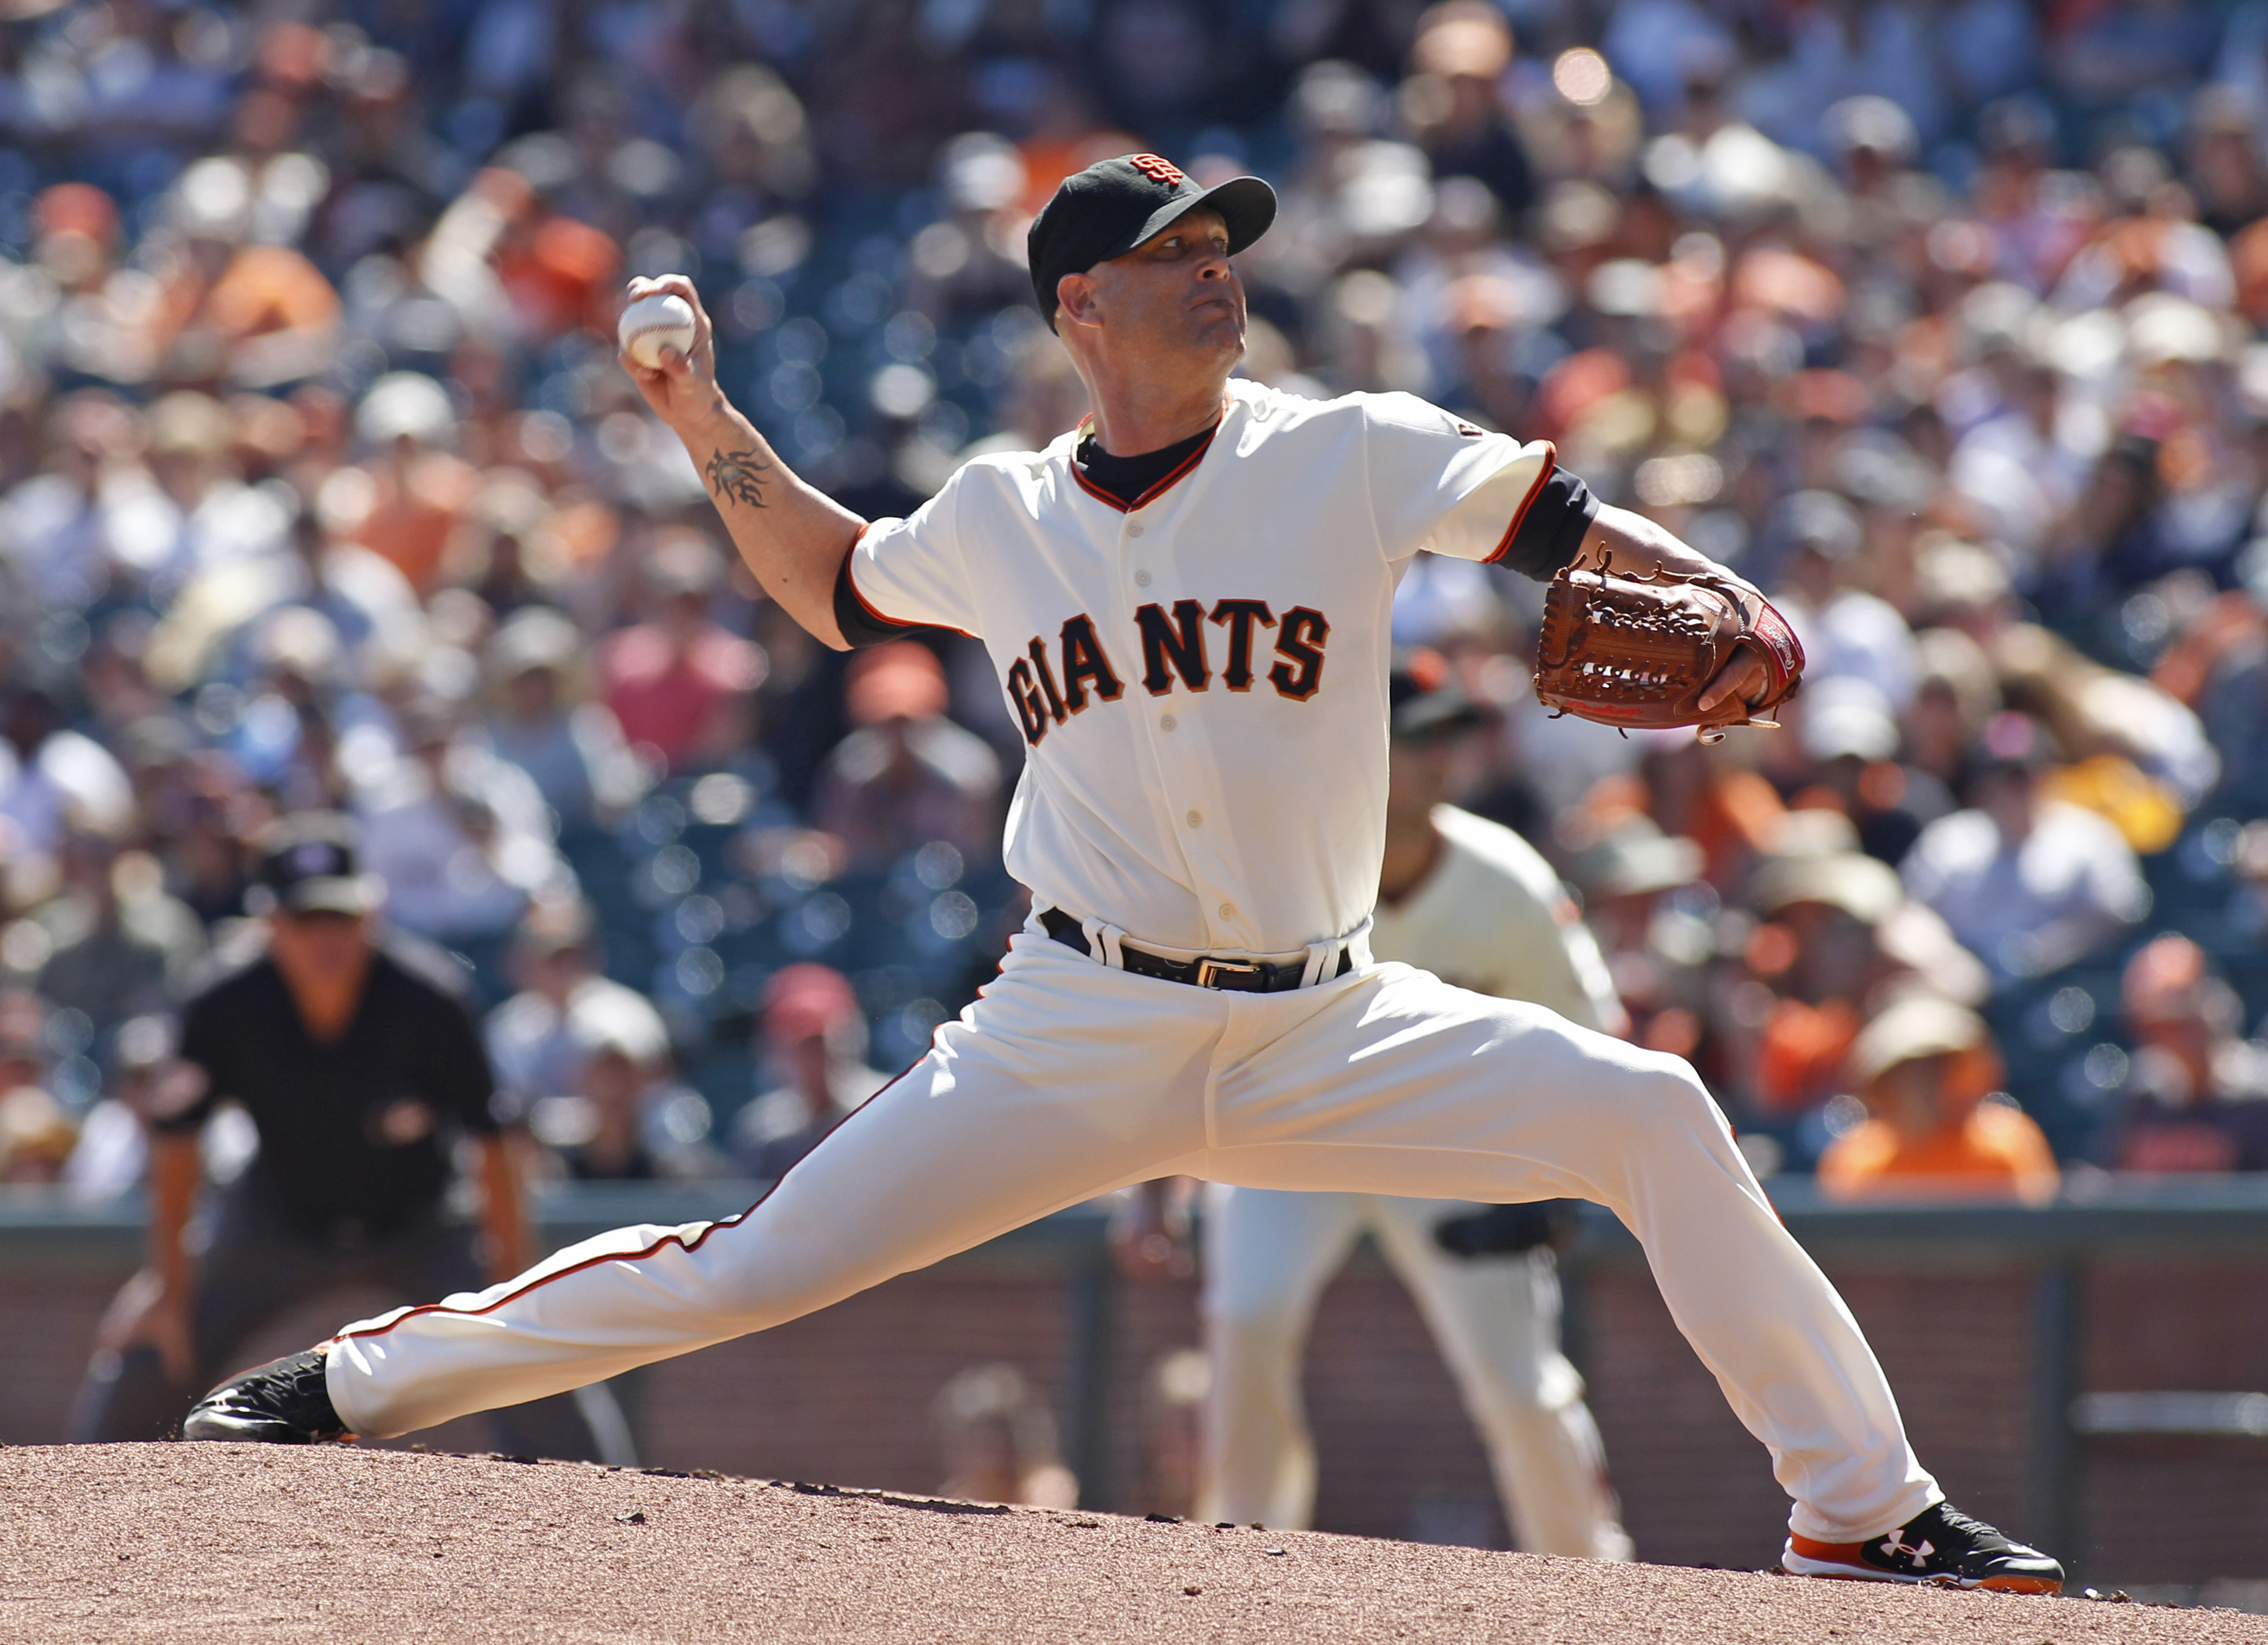 San Francisco Giants pitcher Tim Hudson throws to the Arizona Diamondbacks during the first inning of a baseball game, Sunday, Sept. 20, 2015, in San Francisco. (AP Photo/George Nikitin)